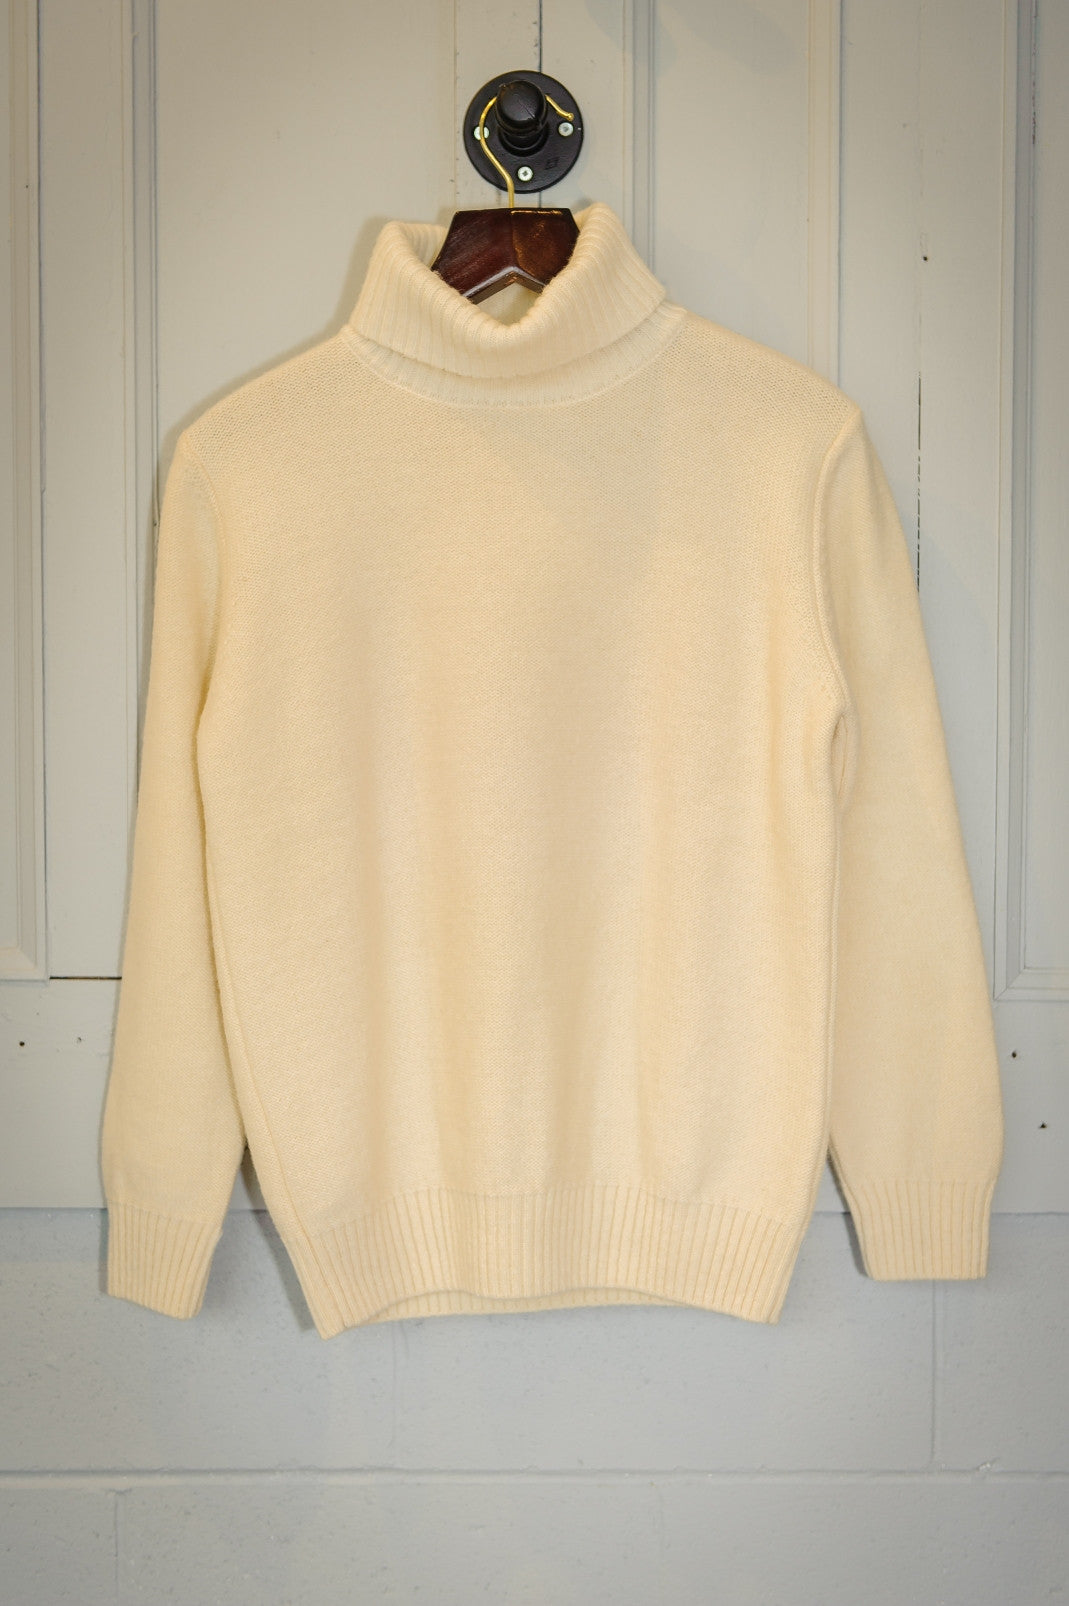 Torres Knitted Wool Turtleneck - Off White